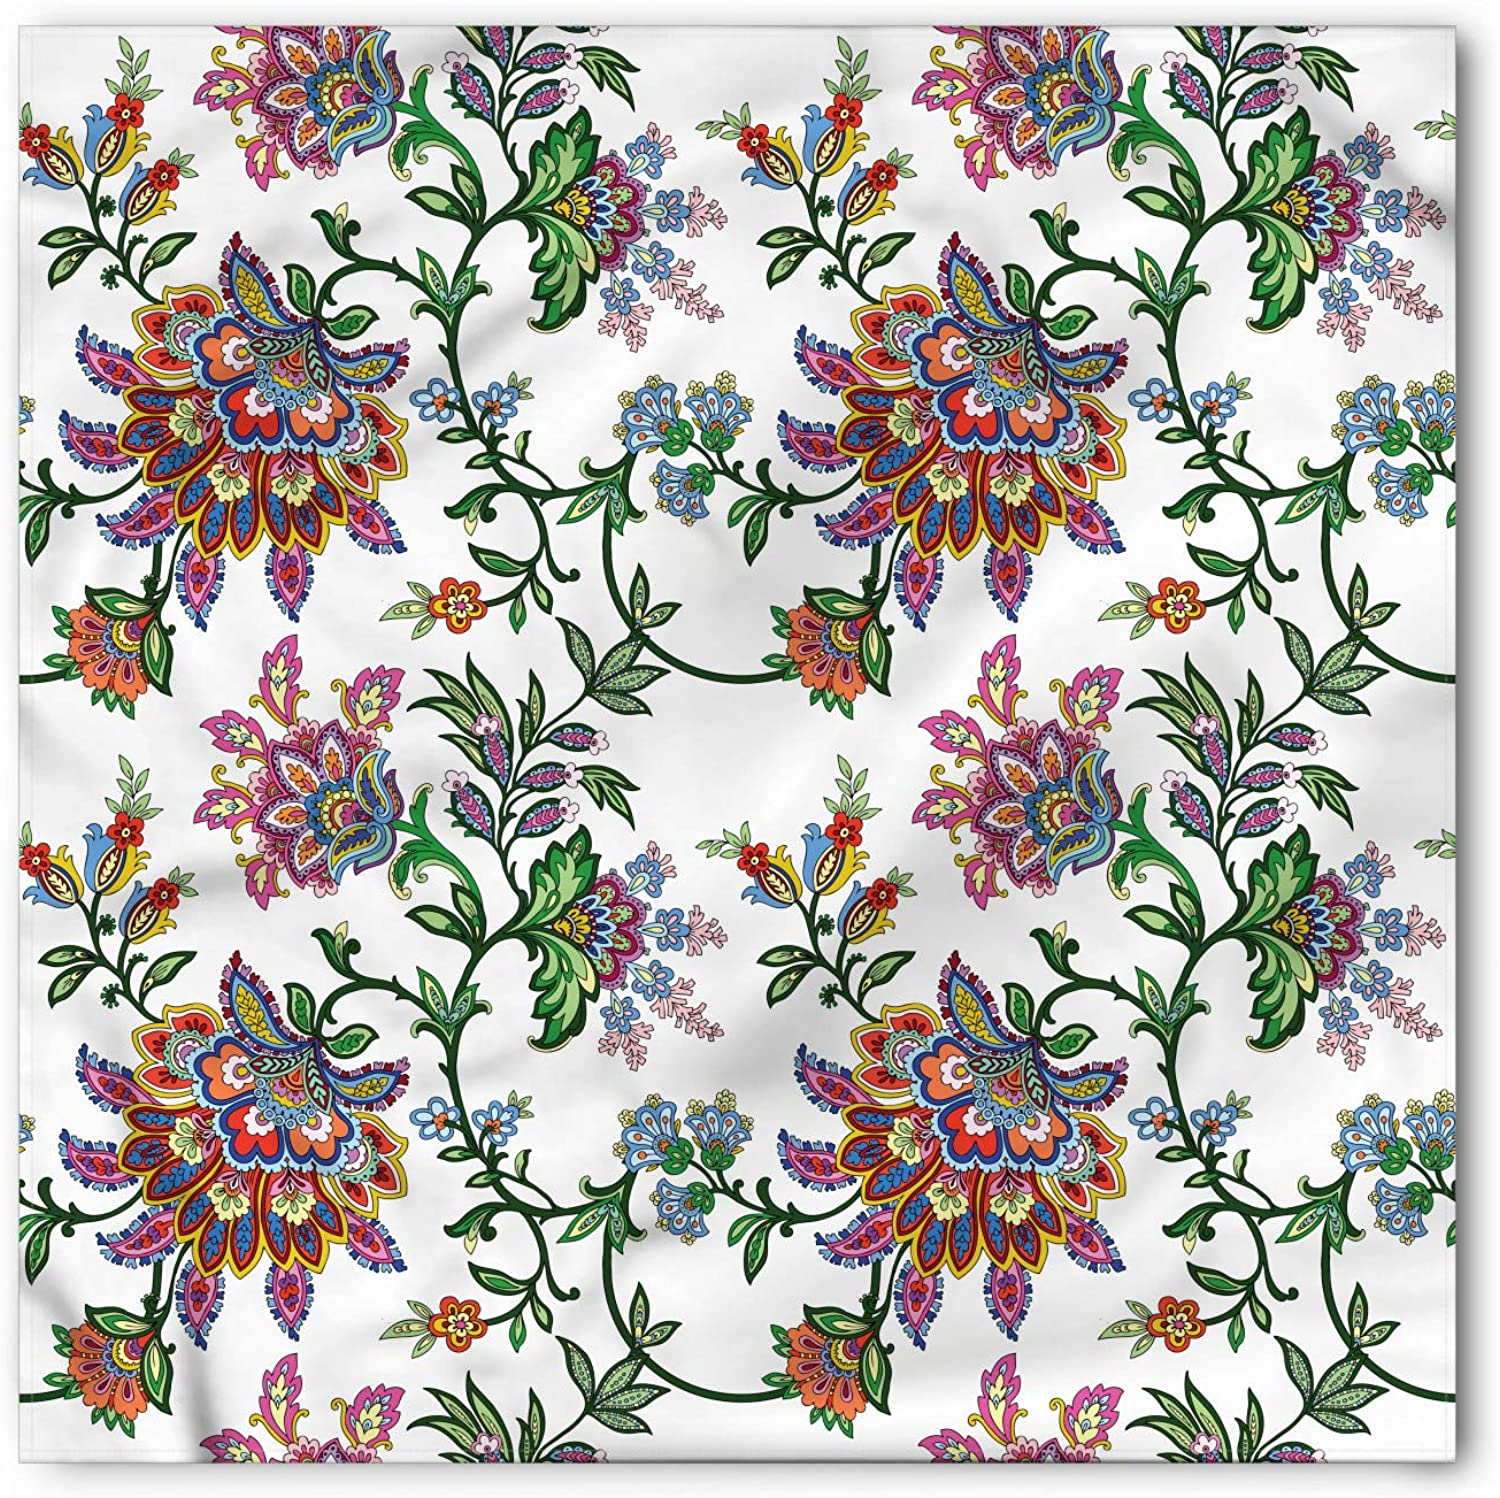 Details about  /Ambesonne Floral Bouquet Bandana Printed Unisex Head Neck Tie Scarf Headband